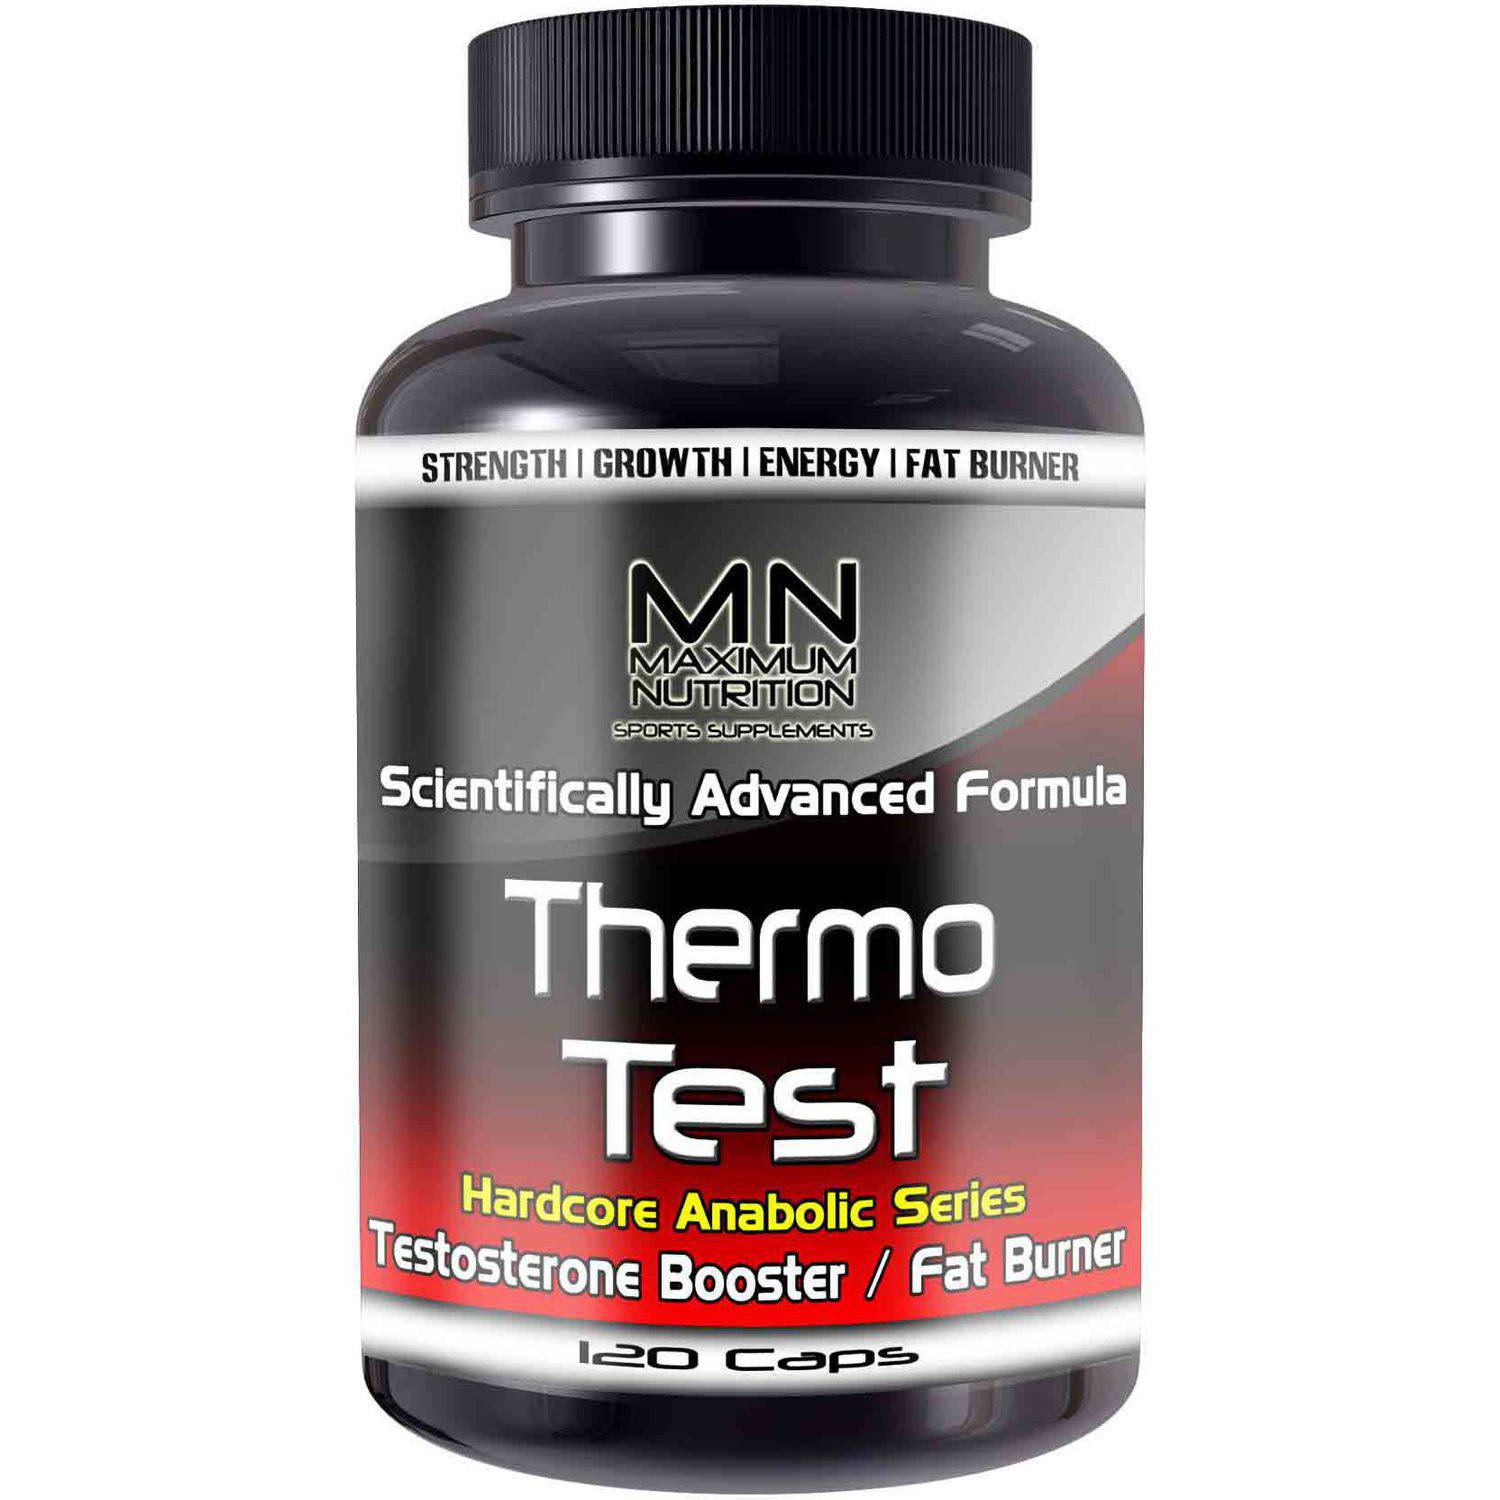 Maximum Nutrition Thermo Test Testosterone Booster and Fat Burning Complex, 120 count